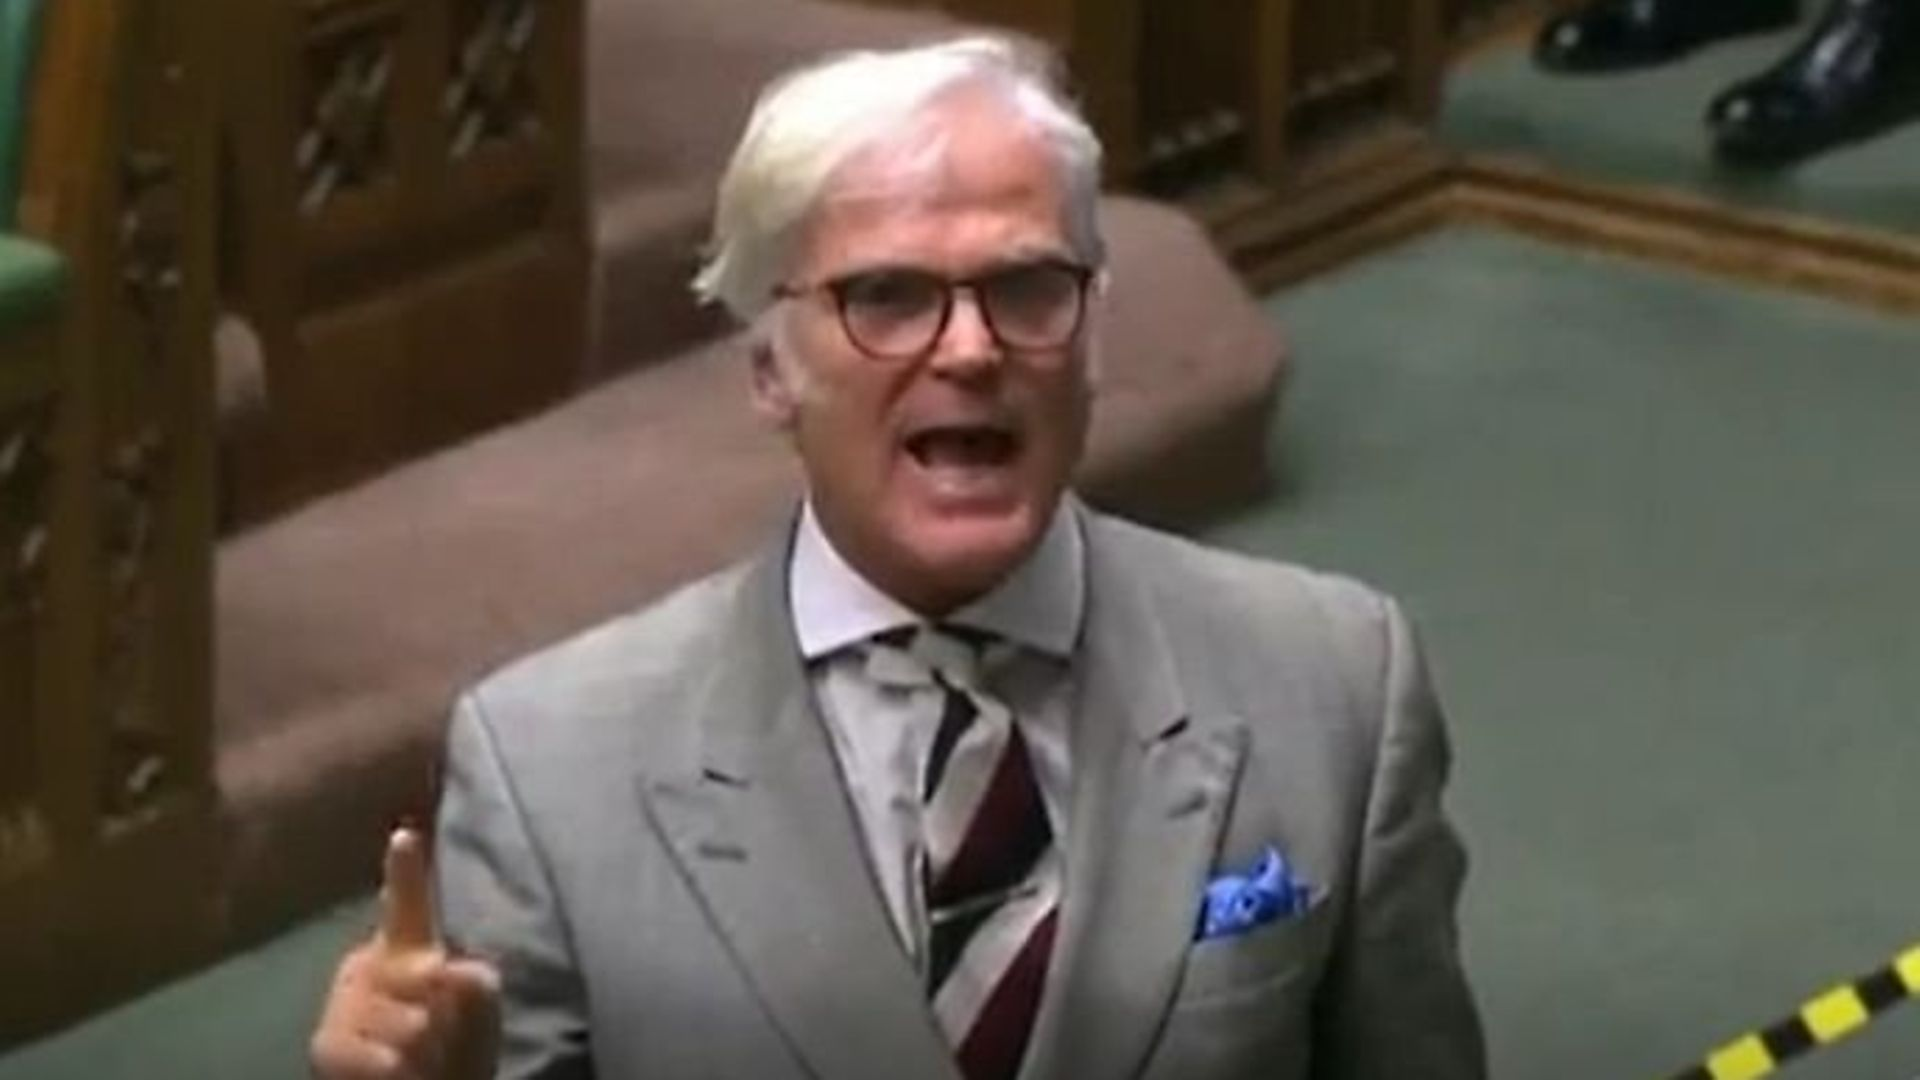 Tory MP Desmond Swayne in the House of Commons - Credit: Parliament TV